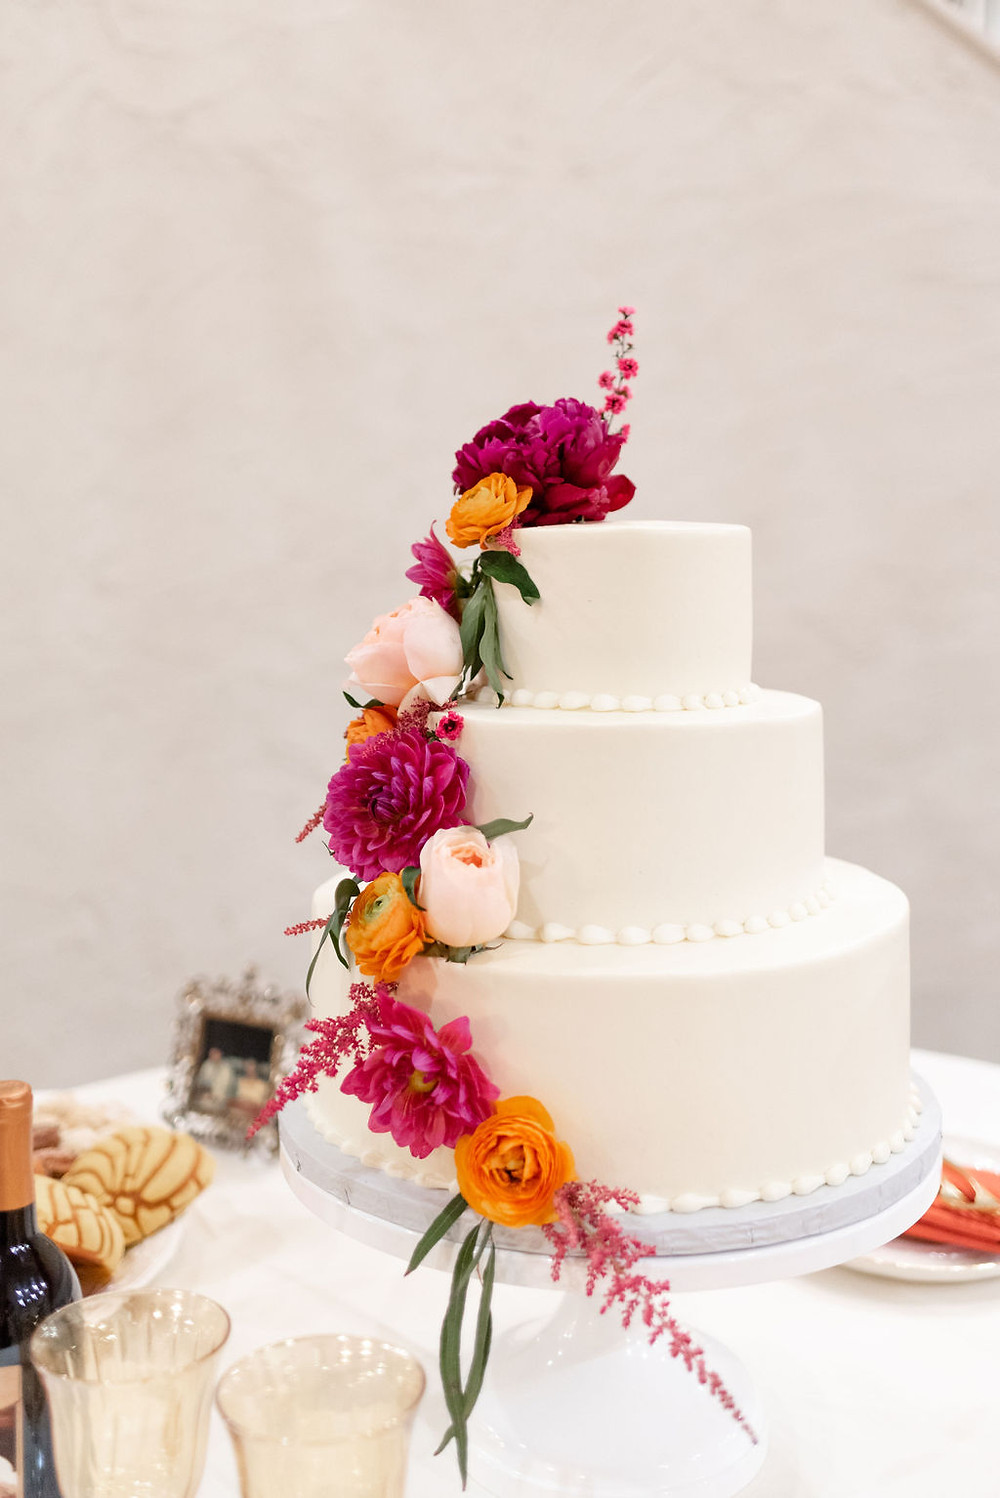 white wedding cake with pink and orange flowers